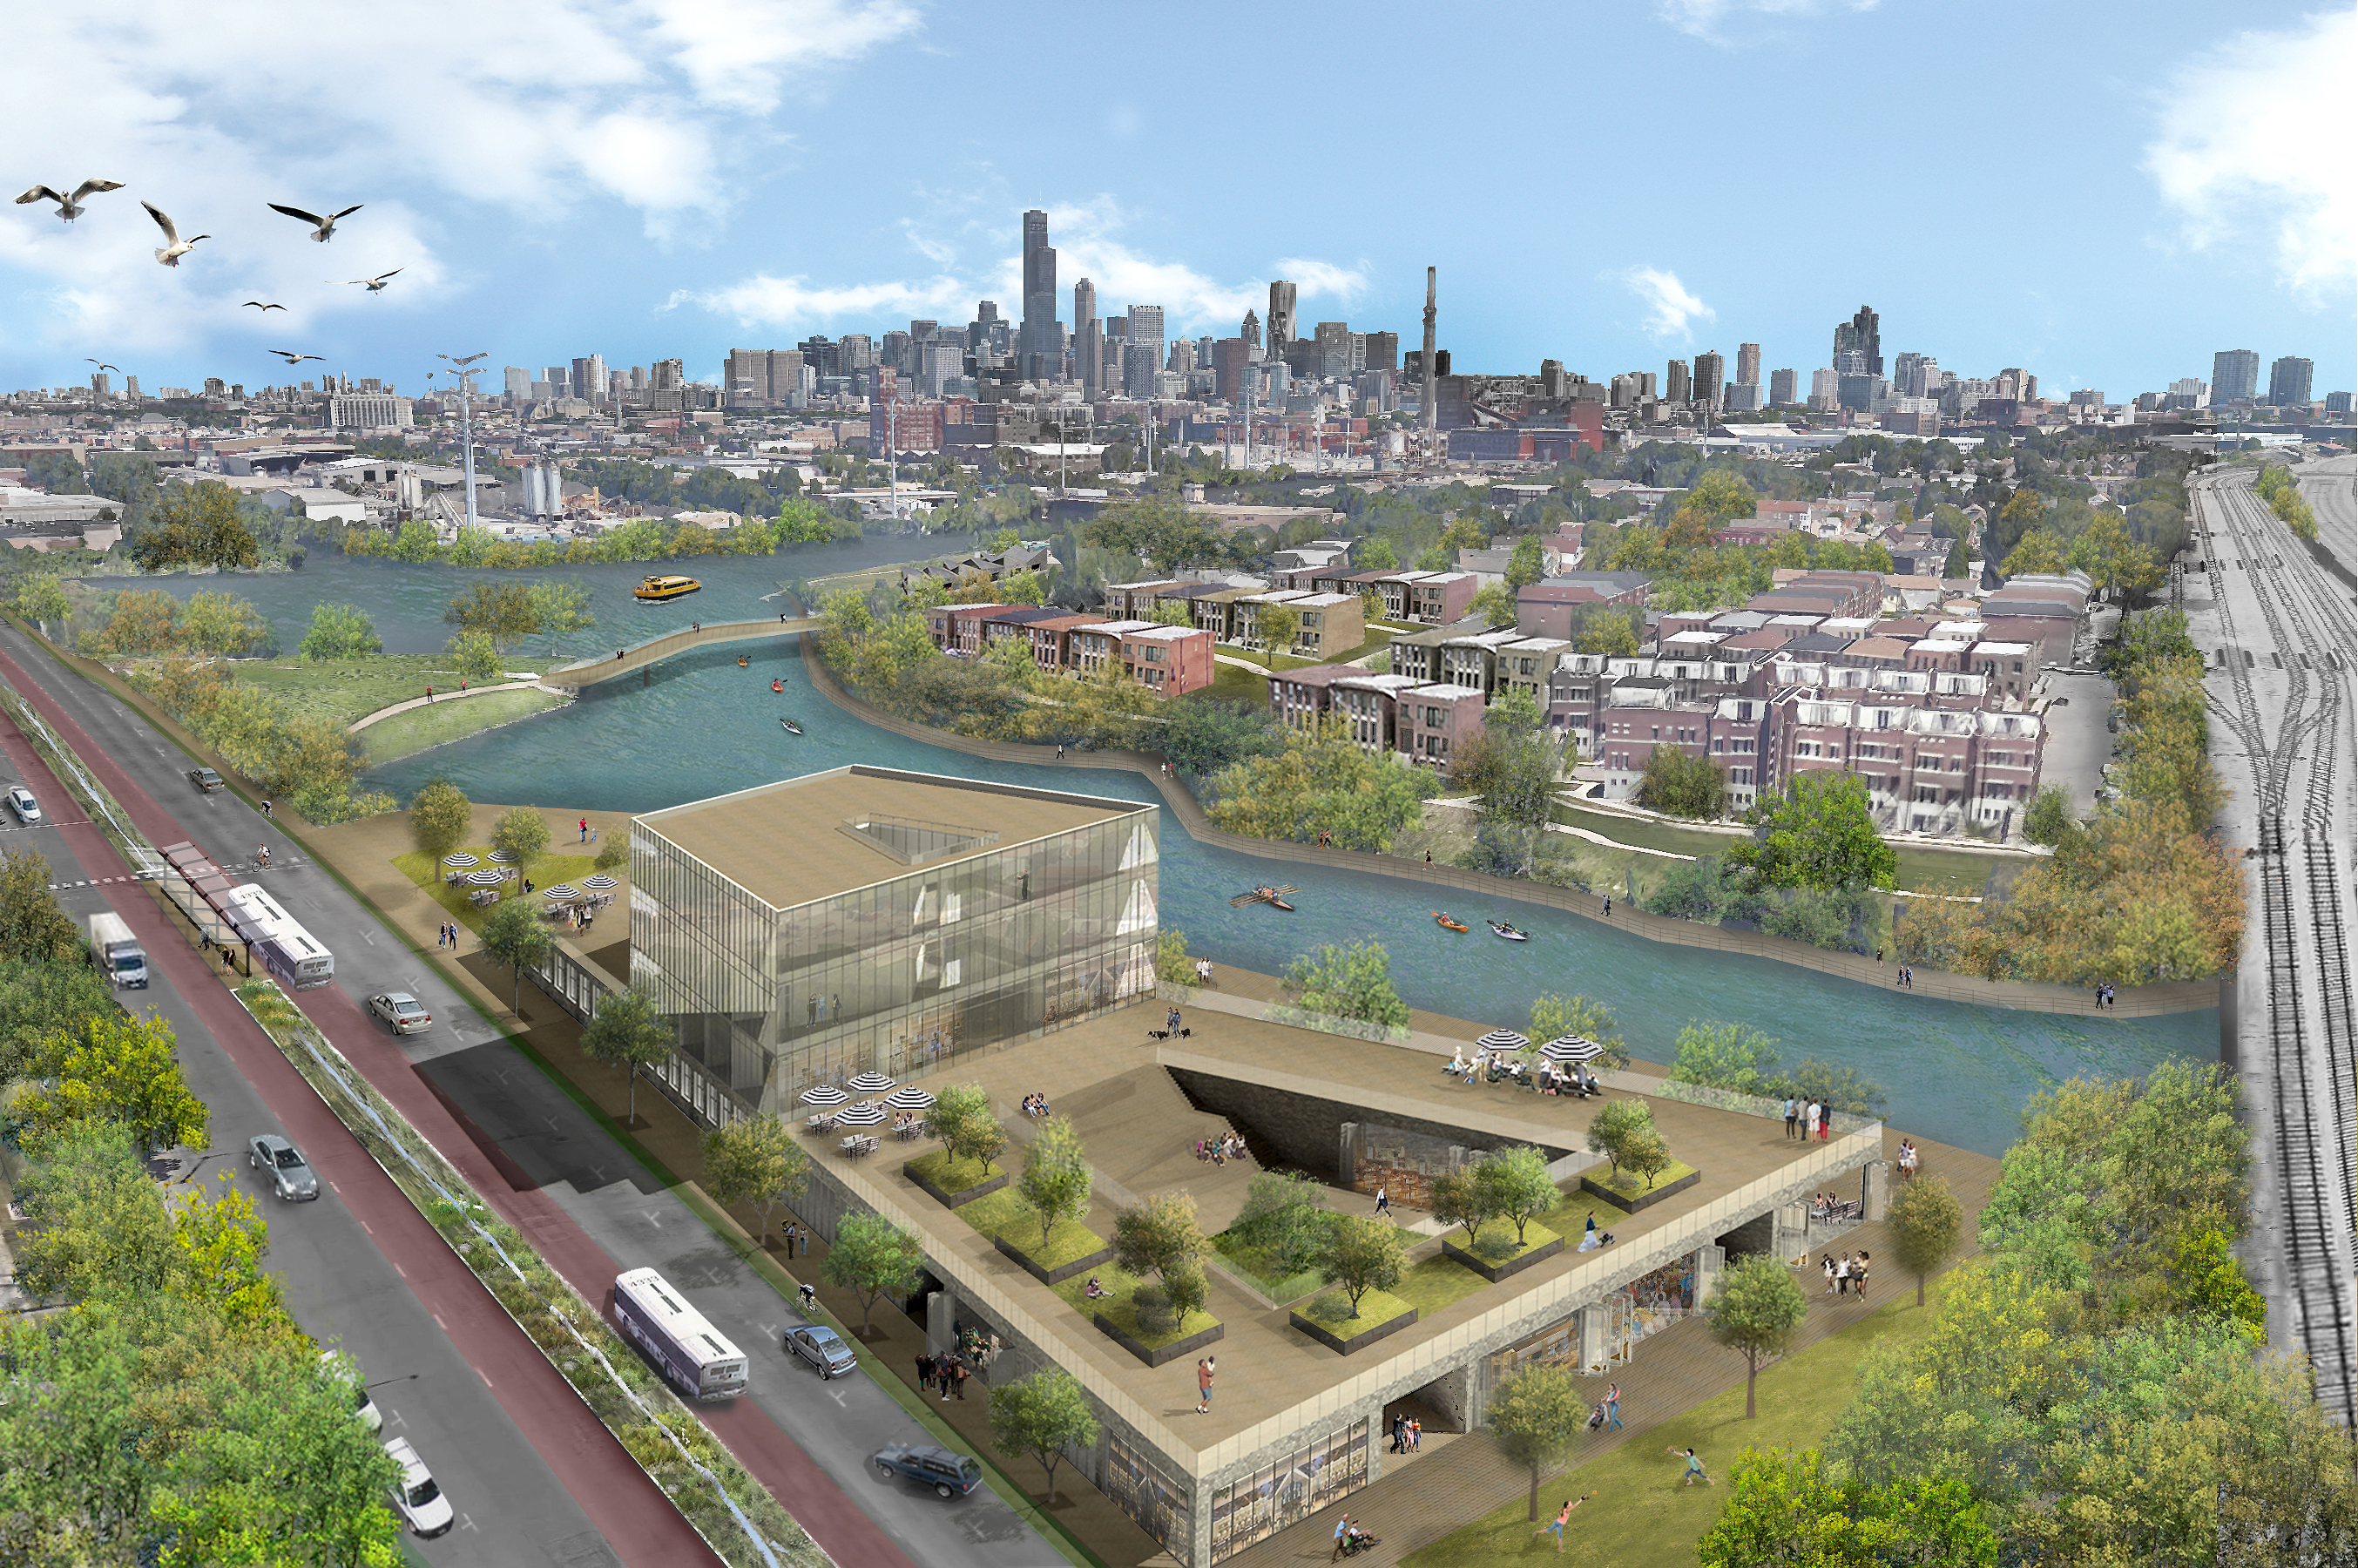 A bird's-eye view rendering of future mixed use development by the Chicago River at Bubbly Creek. (Courtesy of the Metropolitan Planning Council)